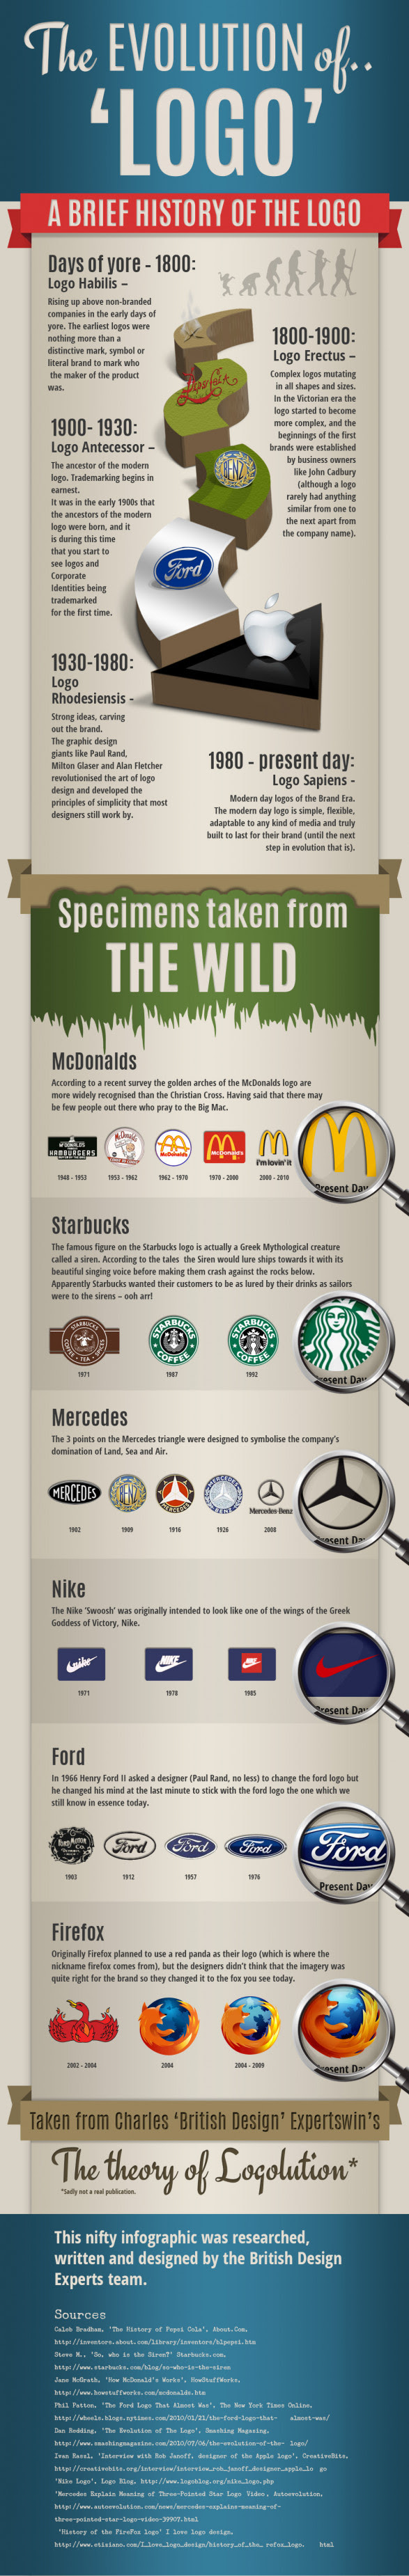 The History of Logo Design